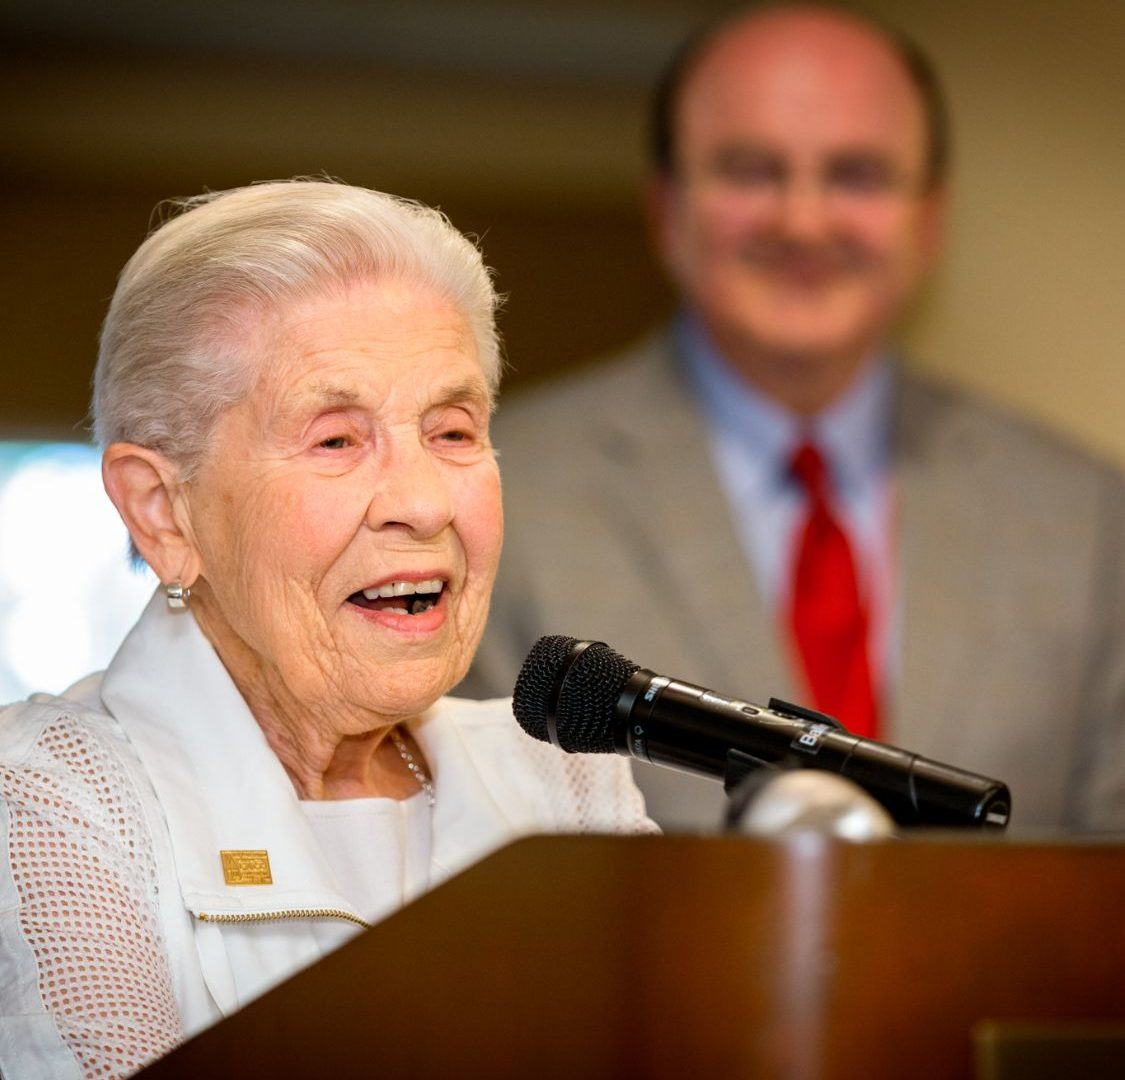 Jean Pearson '48 receives the Vanneman award and shares Reunion stories.